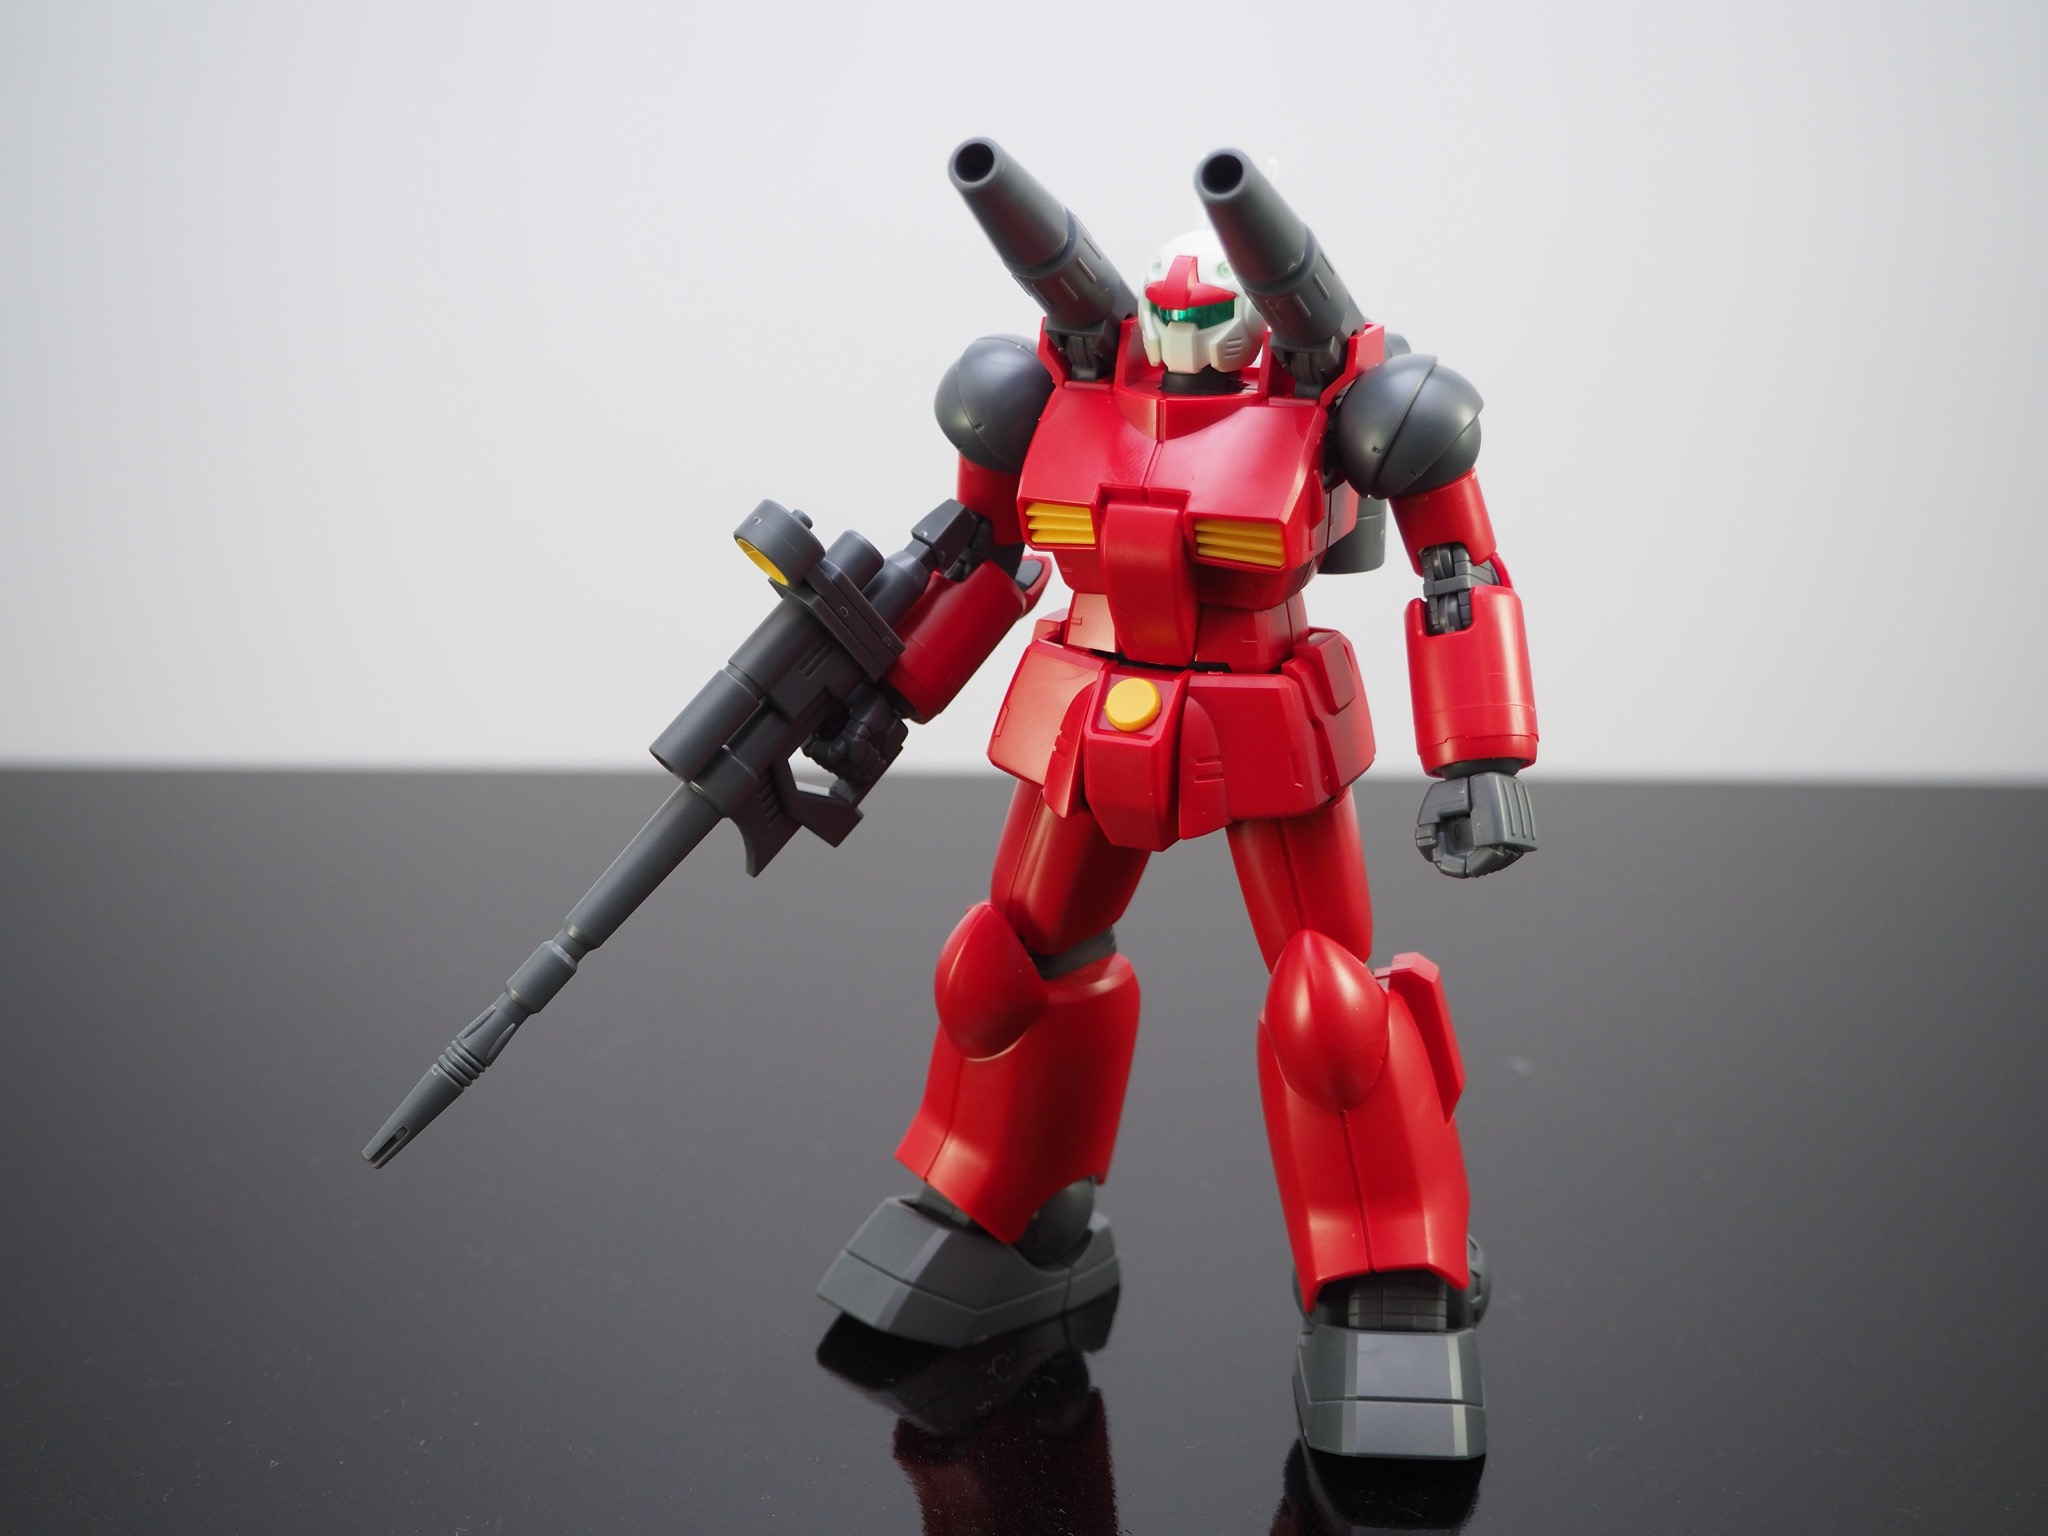 HGUC 190 1/144 REVIVE RX-77-2 ガンキャノン